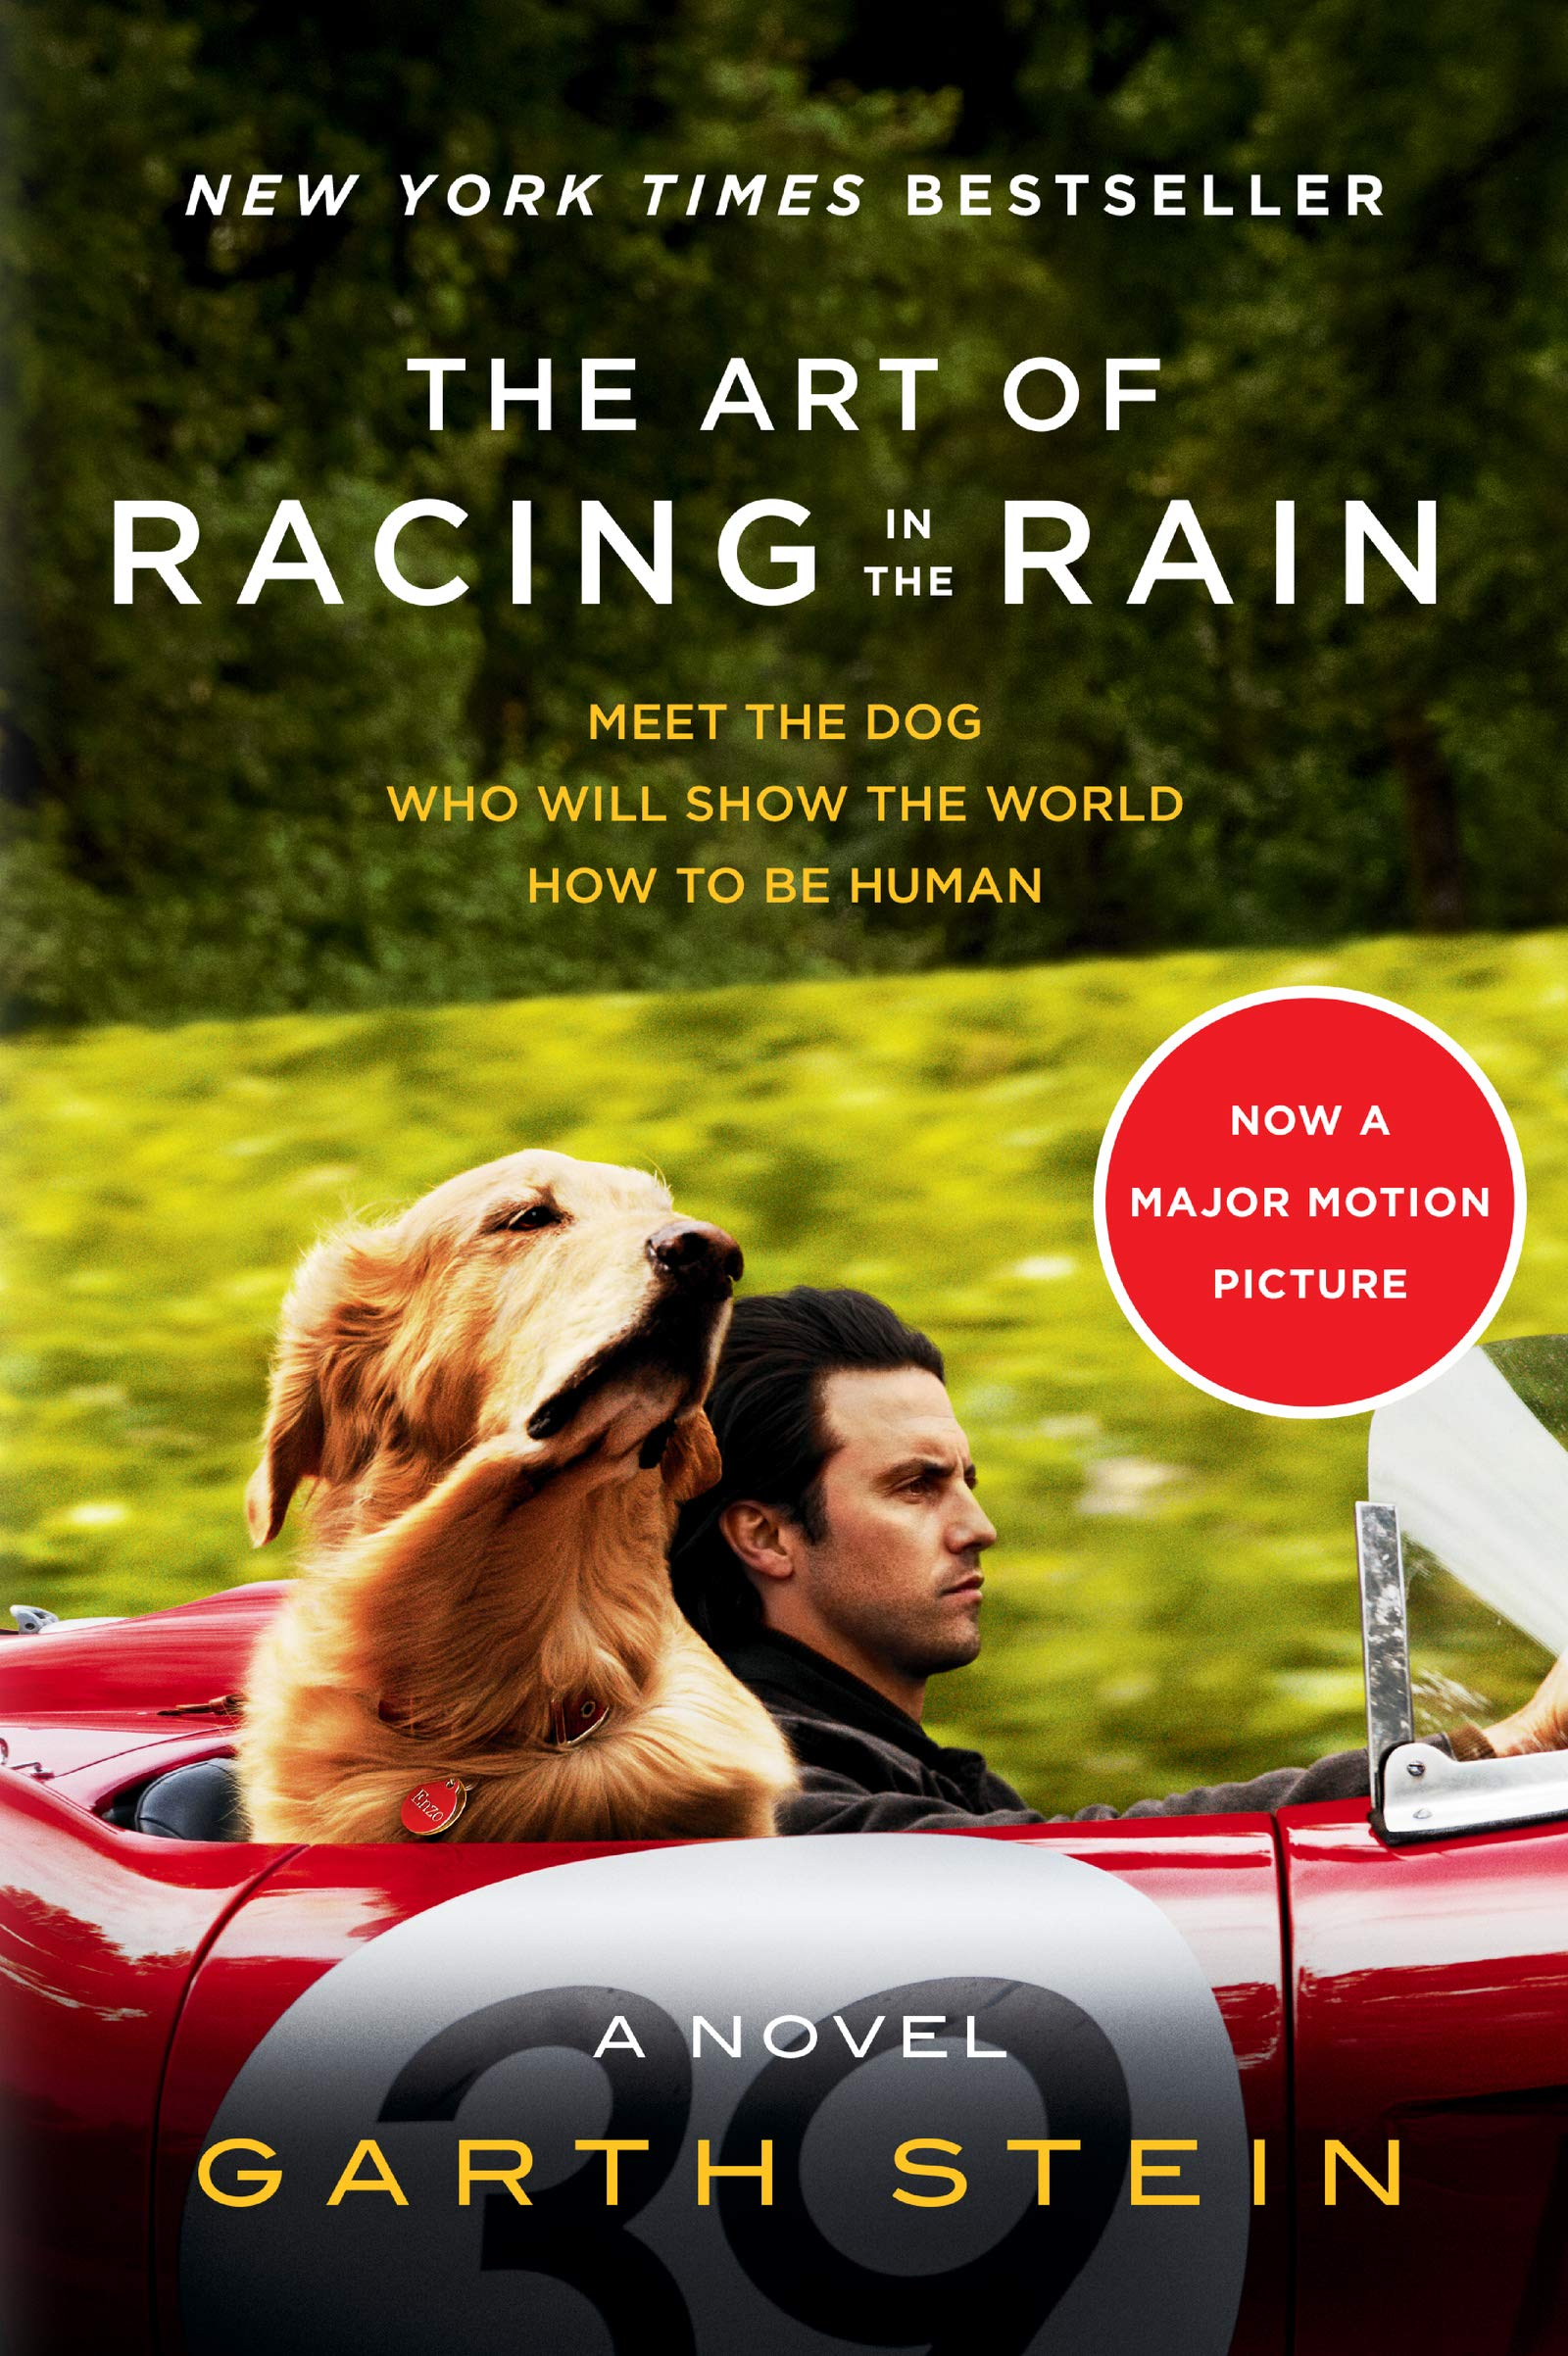 Amazon.com The Art of Racing in the Rain Tie,in A Novel